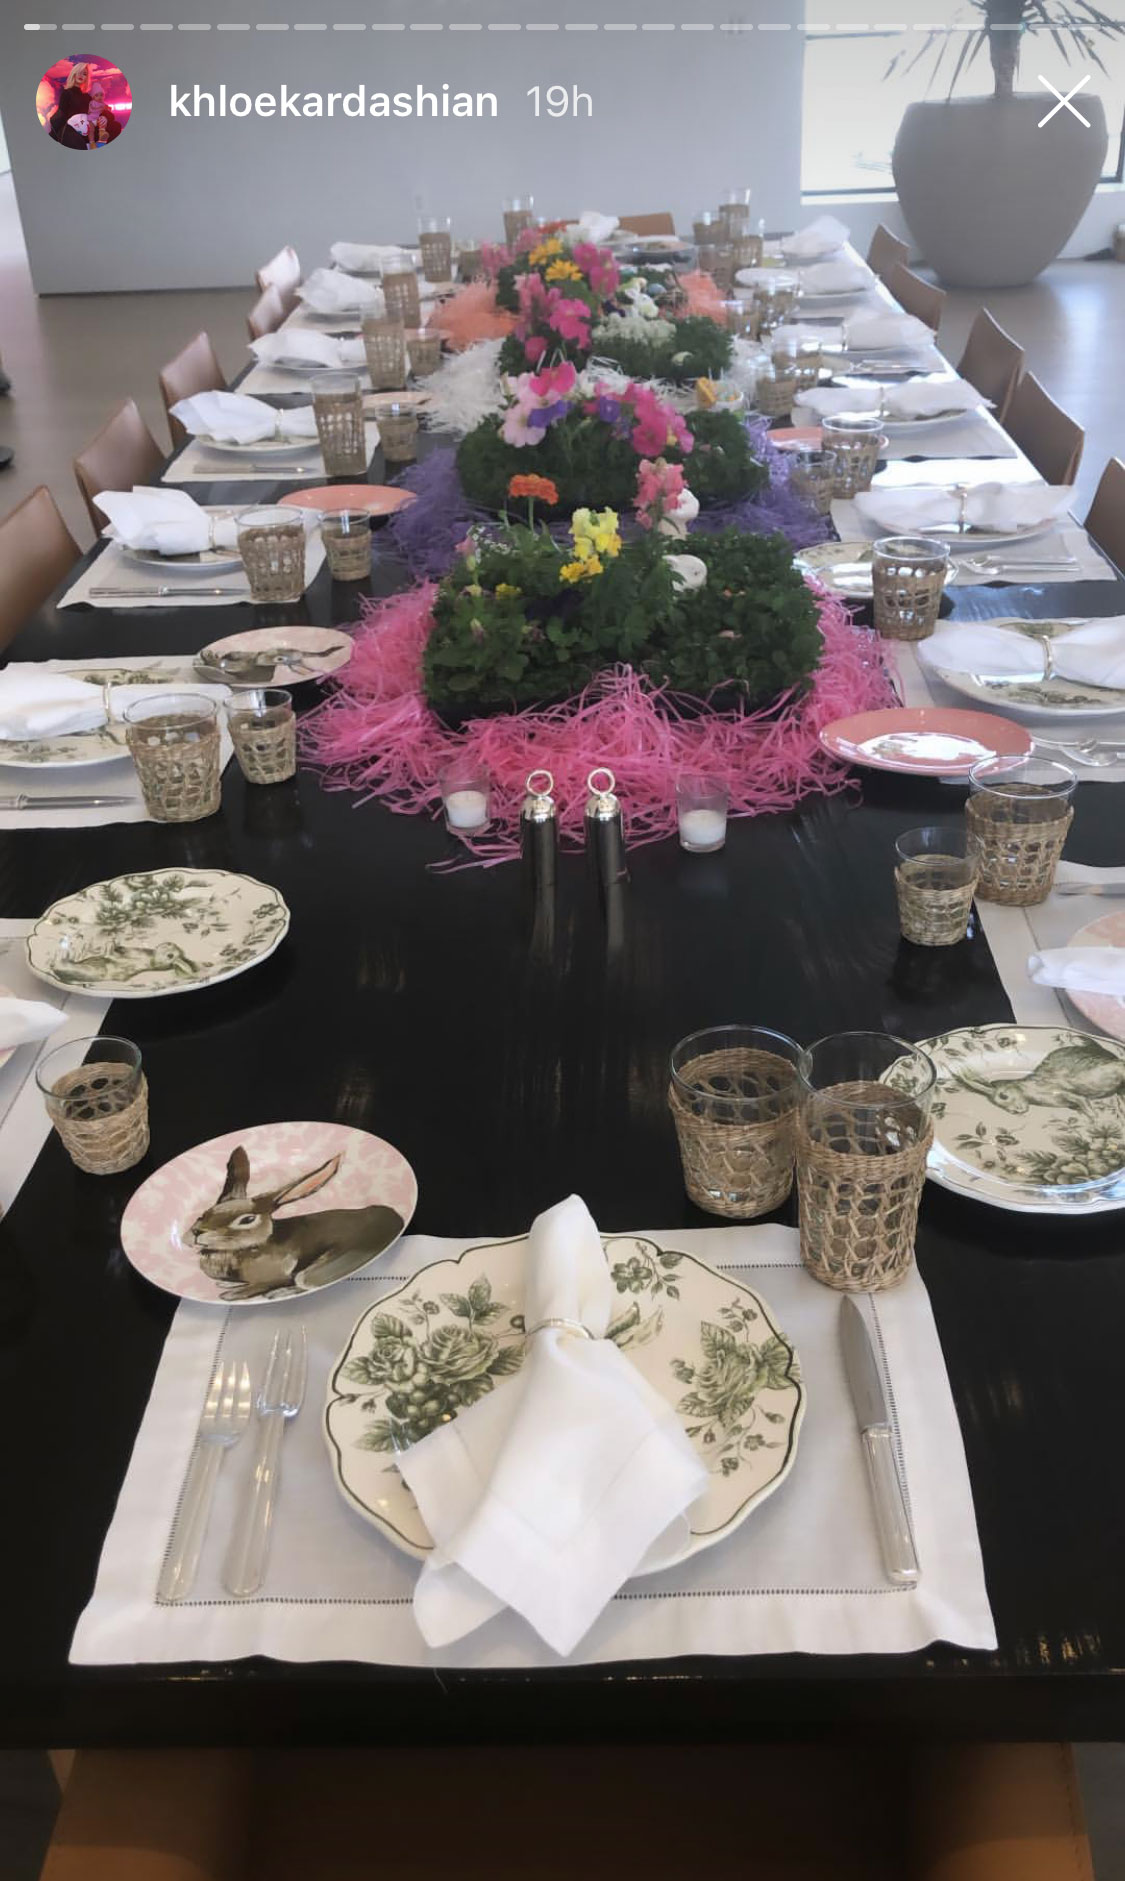 Kardashian Easter - The table was set with bunny plates and Easter-themed centerpieces.